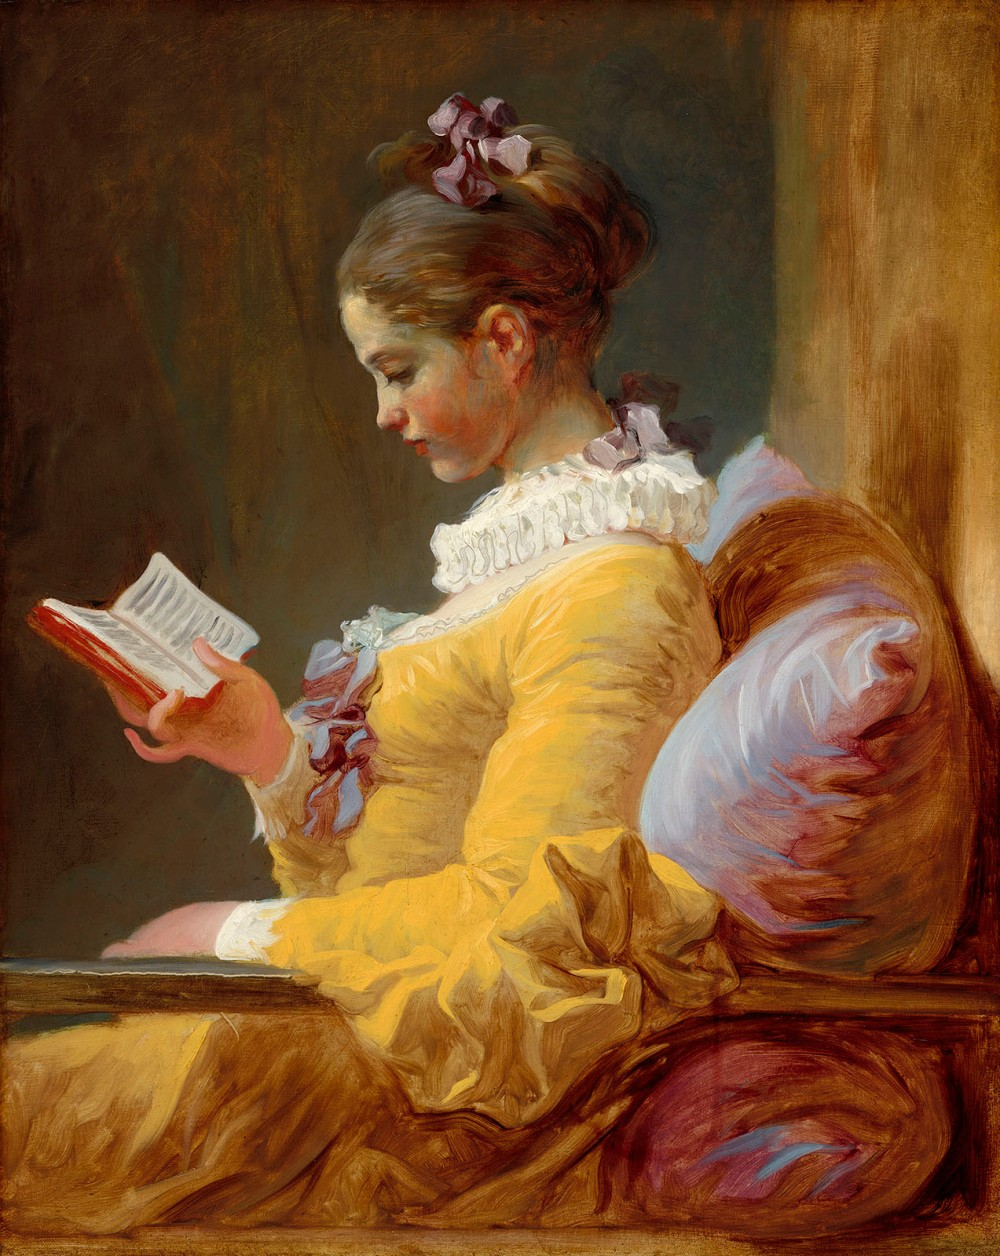 Jean-Honoré Fragonard. Joven leyendo. 1770-1772. National Gallery of Art. Washington.